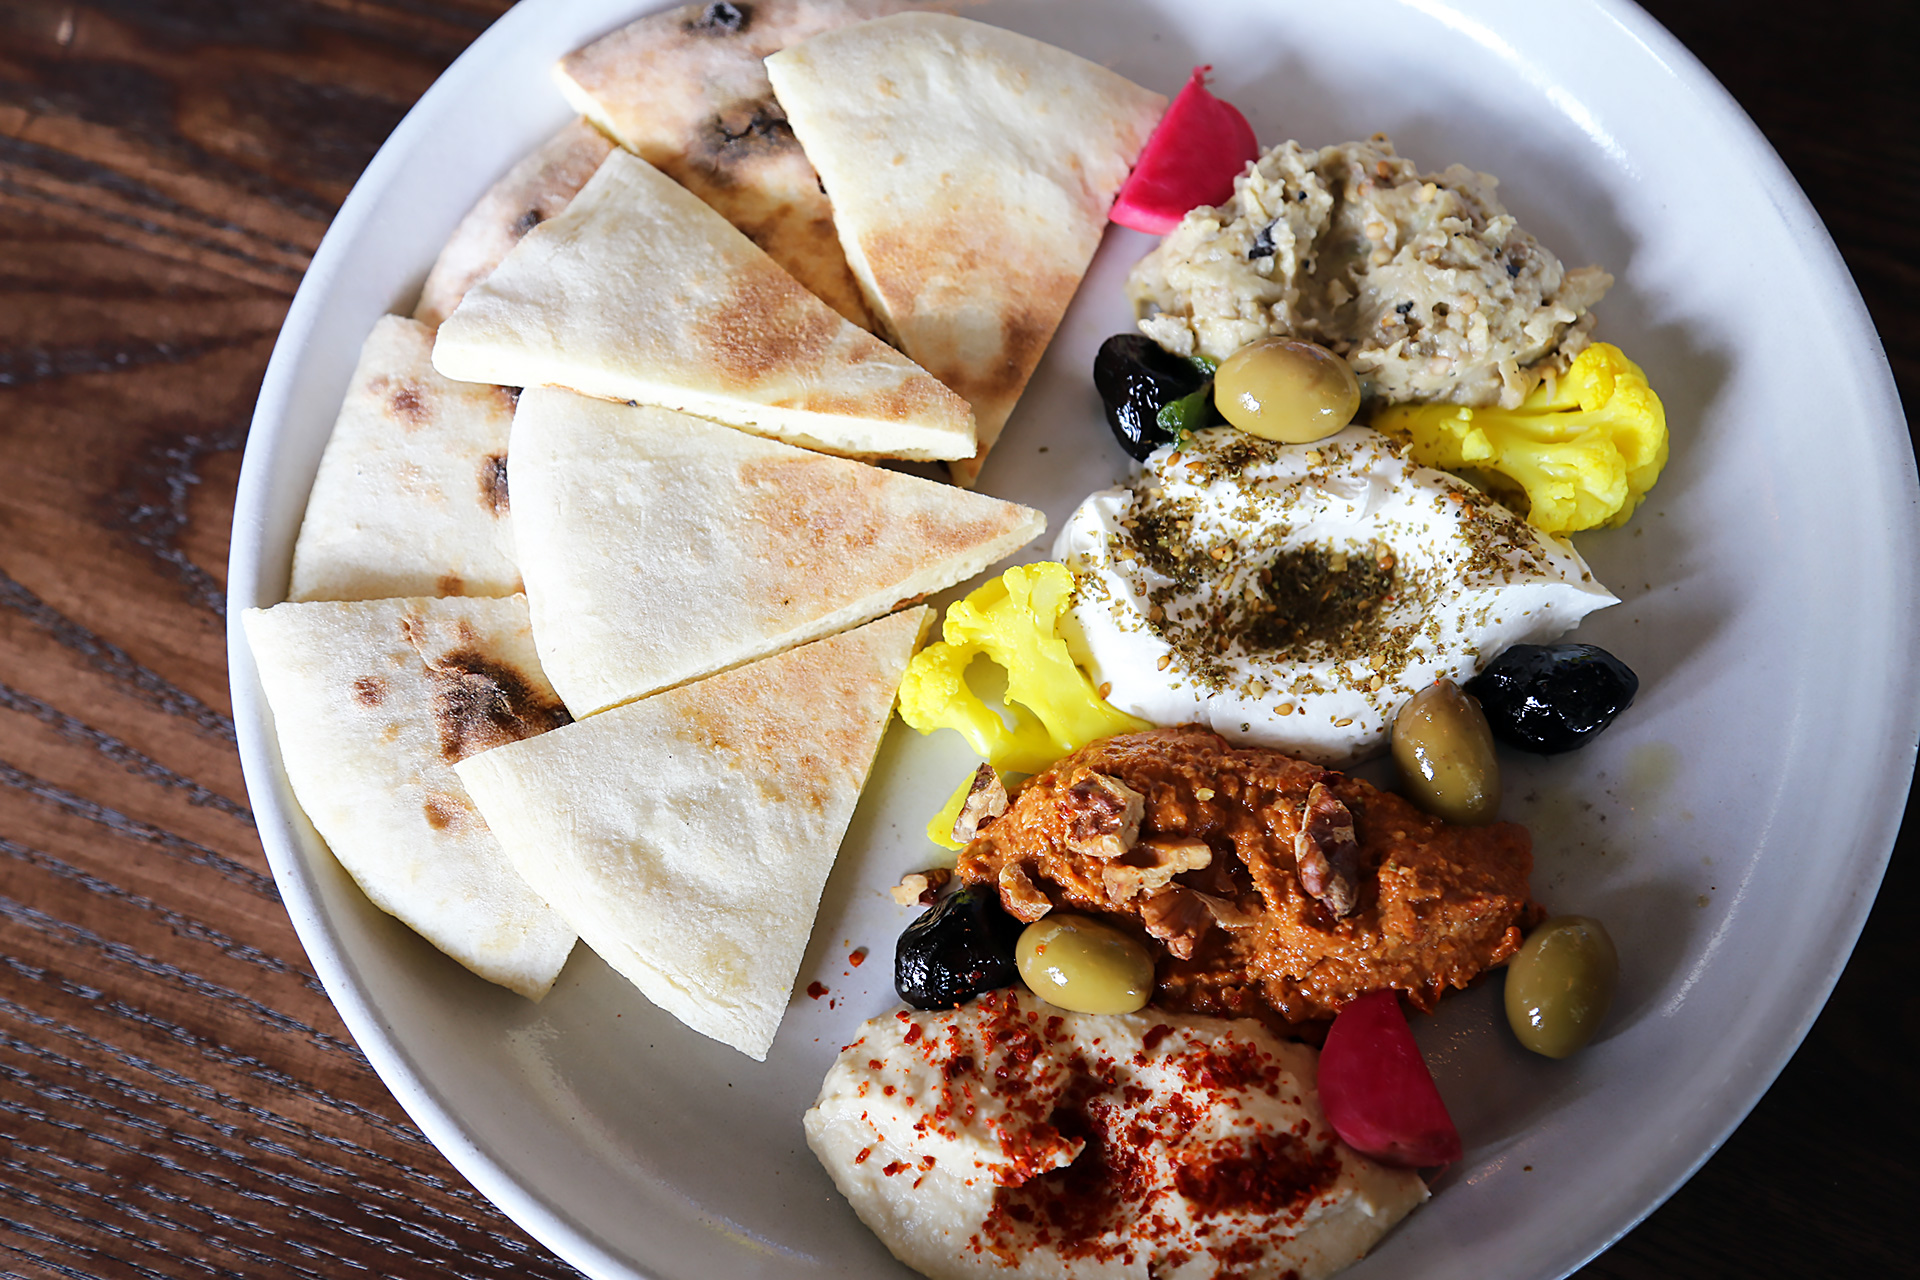 Mezze Sampler at Dyafa.